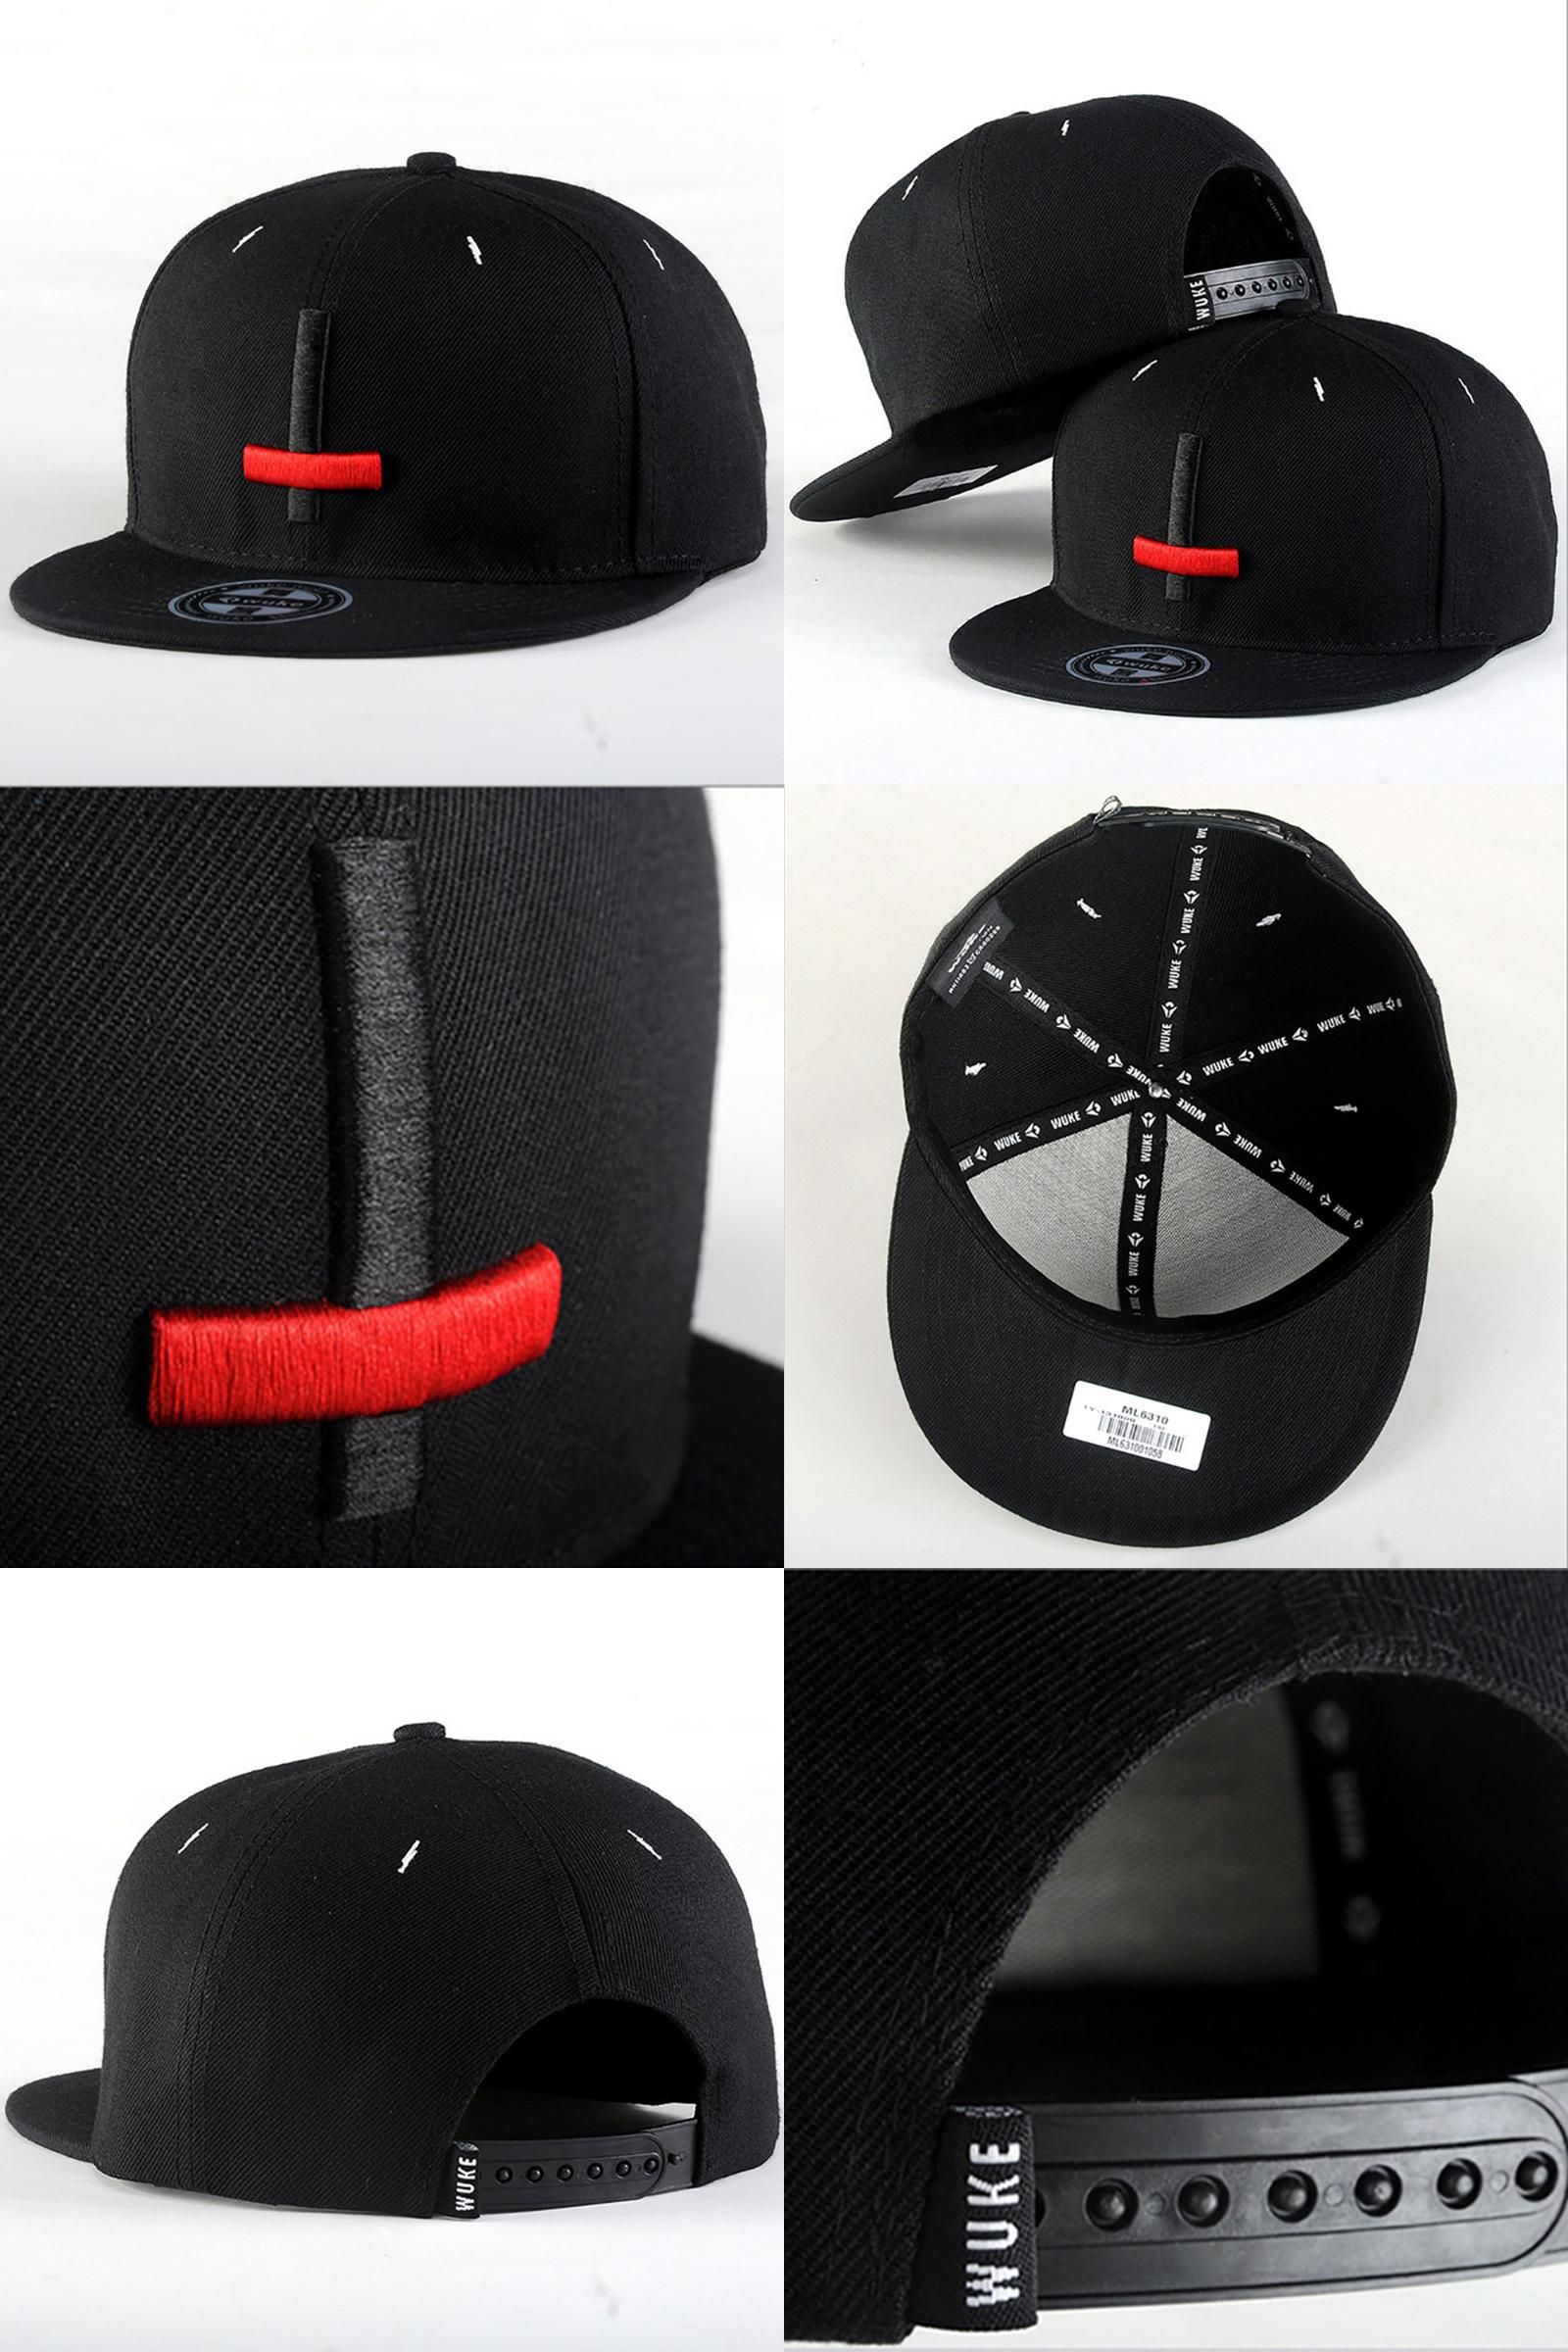 0a25a7027a6  Visit to Buy  2015 New Brand Street Dance Cool Hip Hop Caps Embroidery  Black